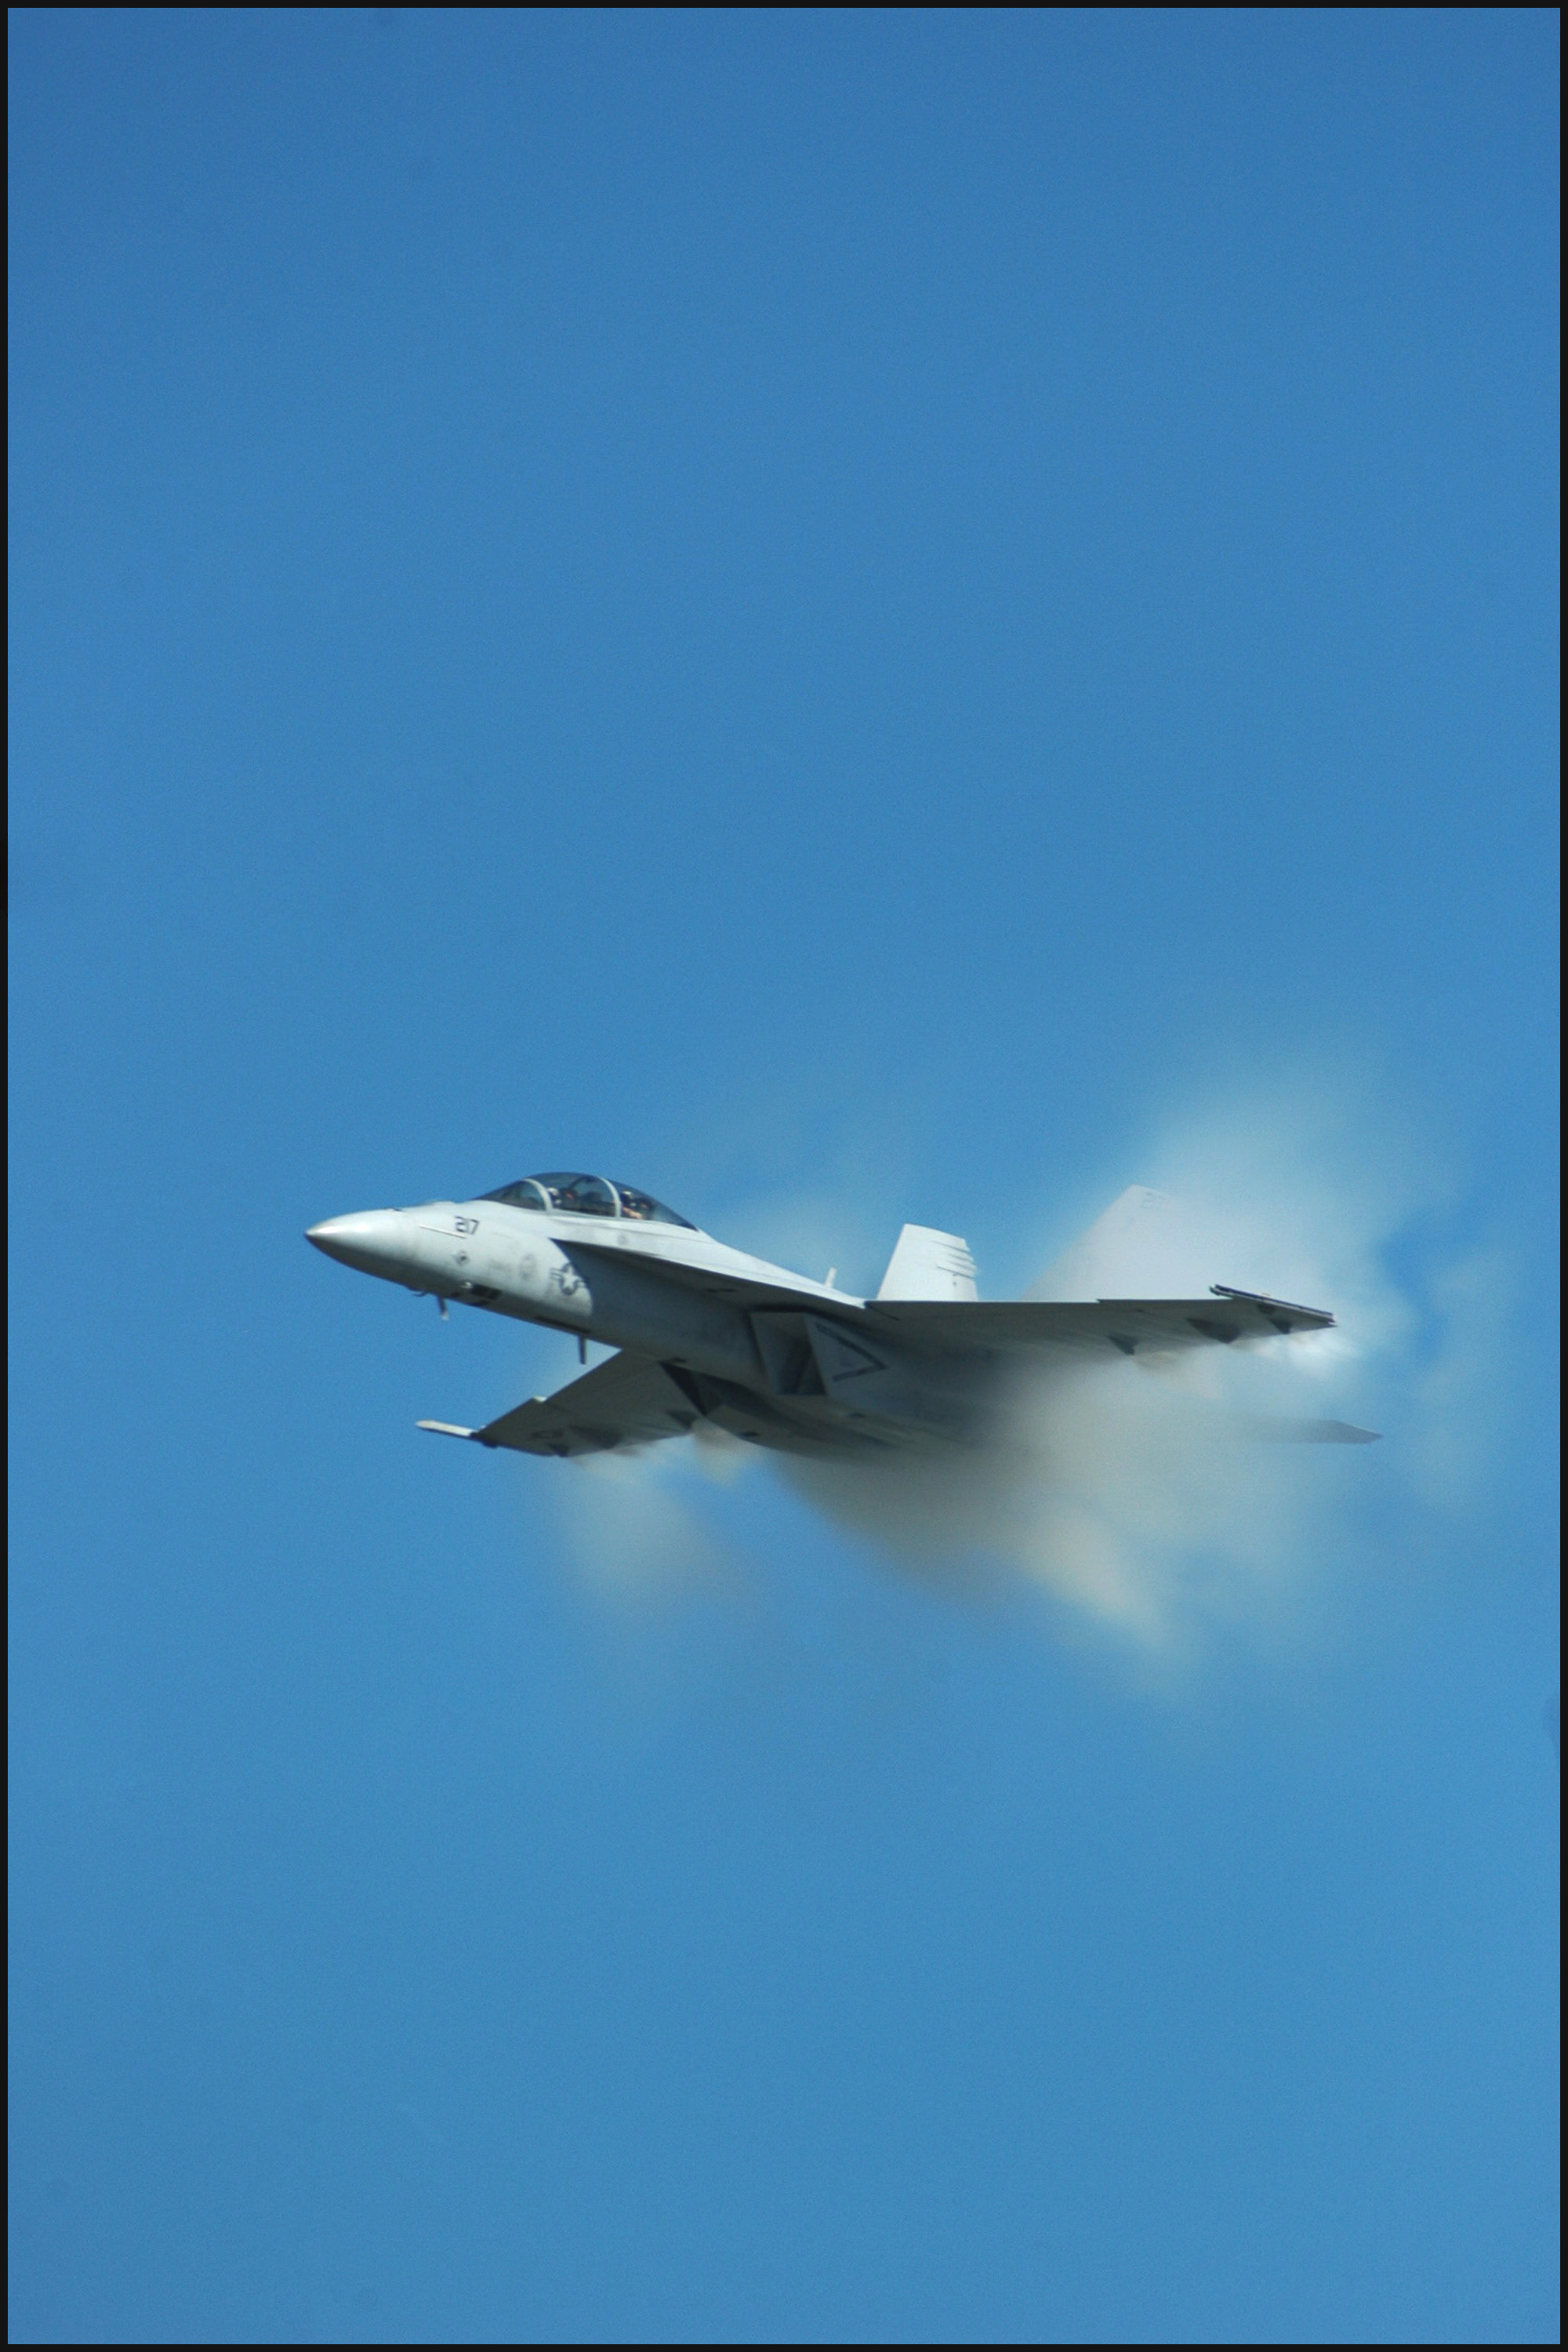 F-18 going supersonic